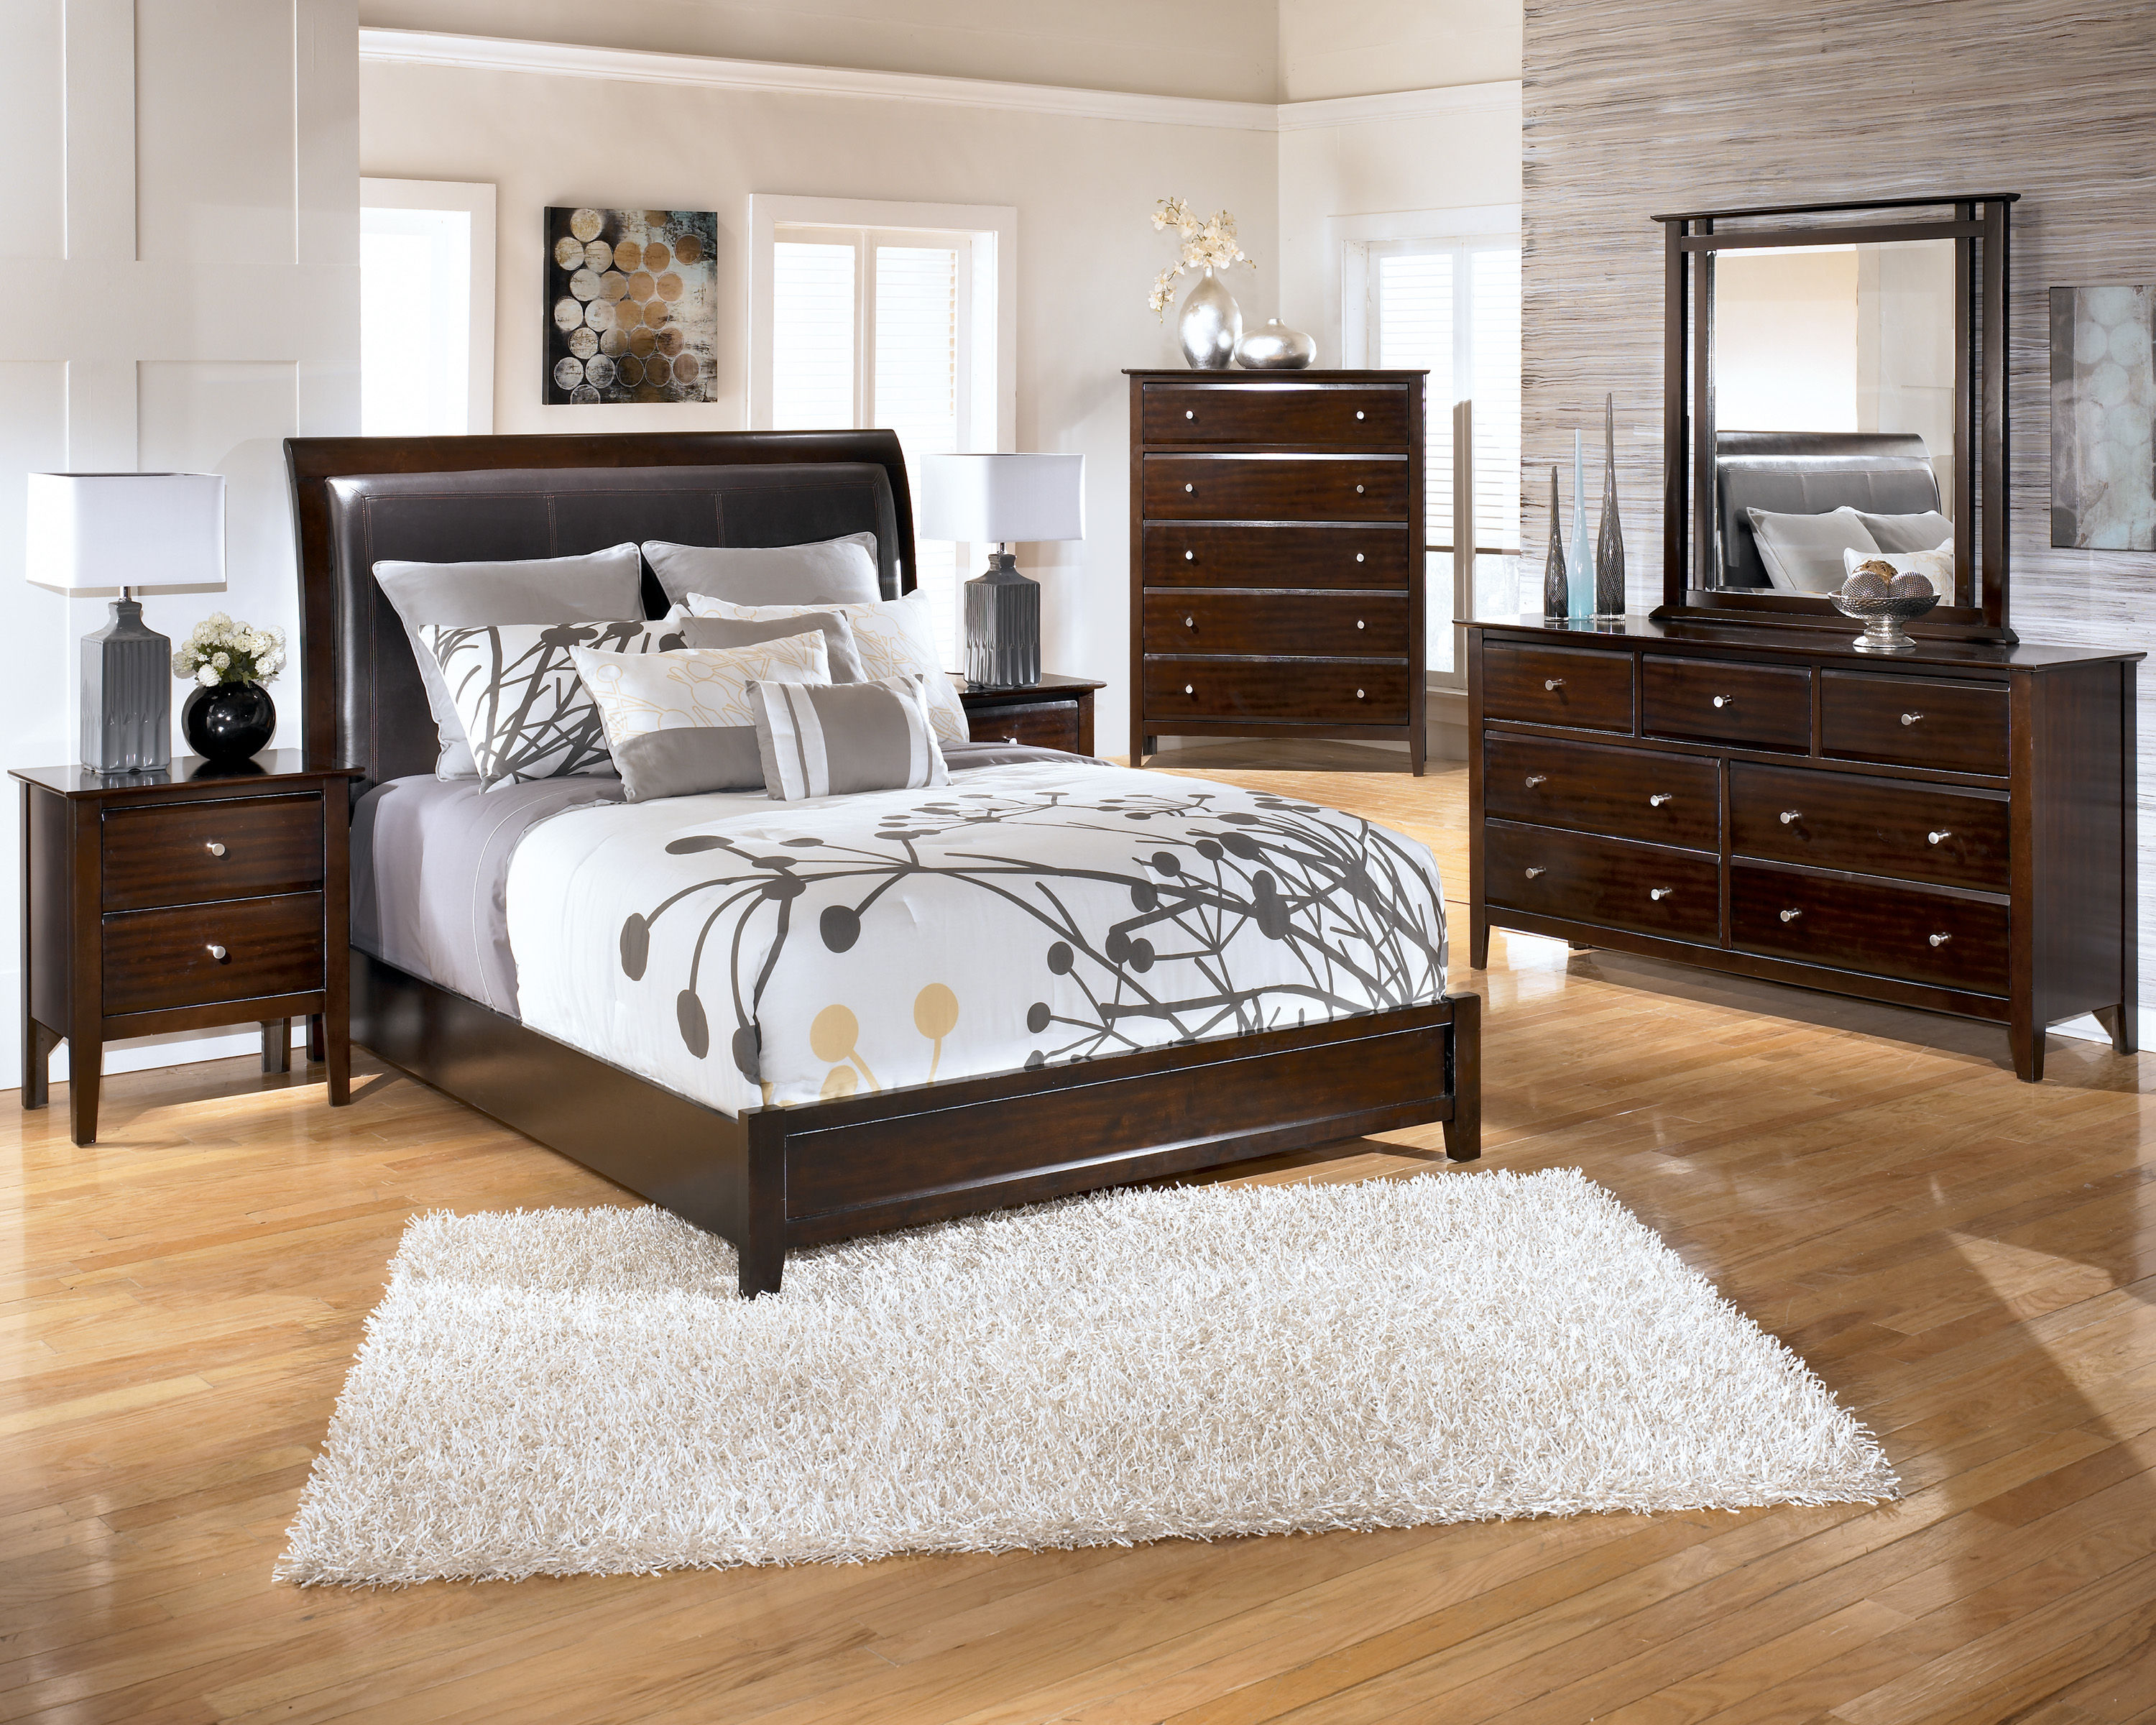 Templenz brown master bedroom set the classy home the for Best deals on bedroom furniture sets